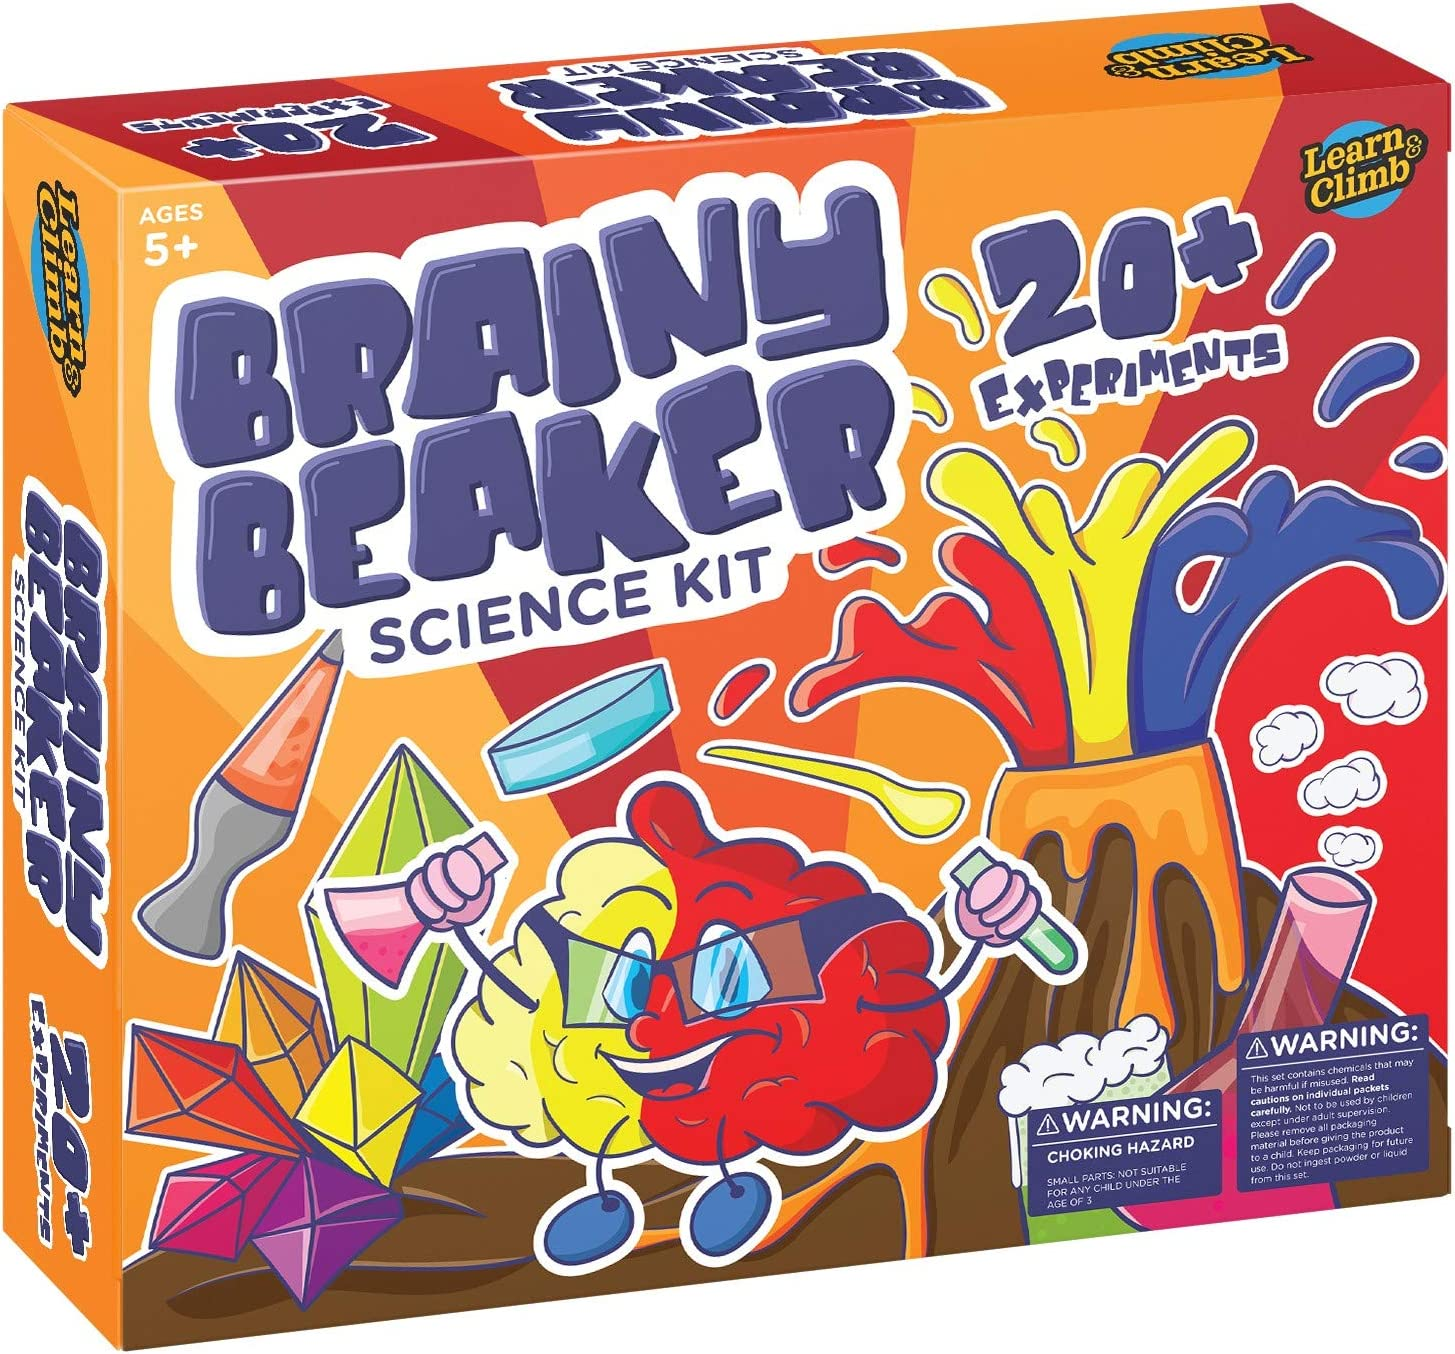 Learn & Climb Science Kit for Kids- A Variety of 21 Science Experiments and Name Tag Included!